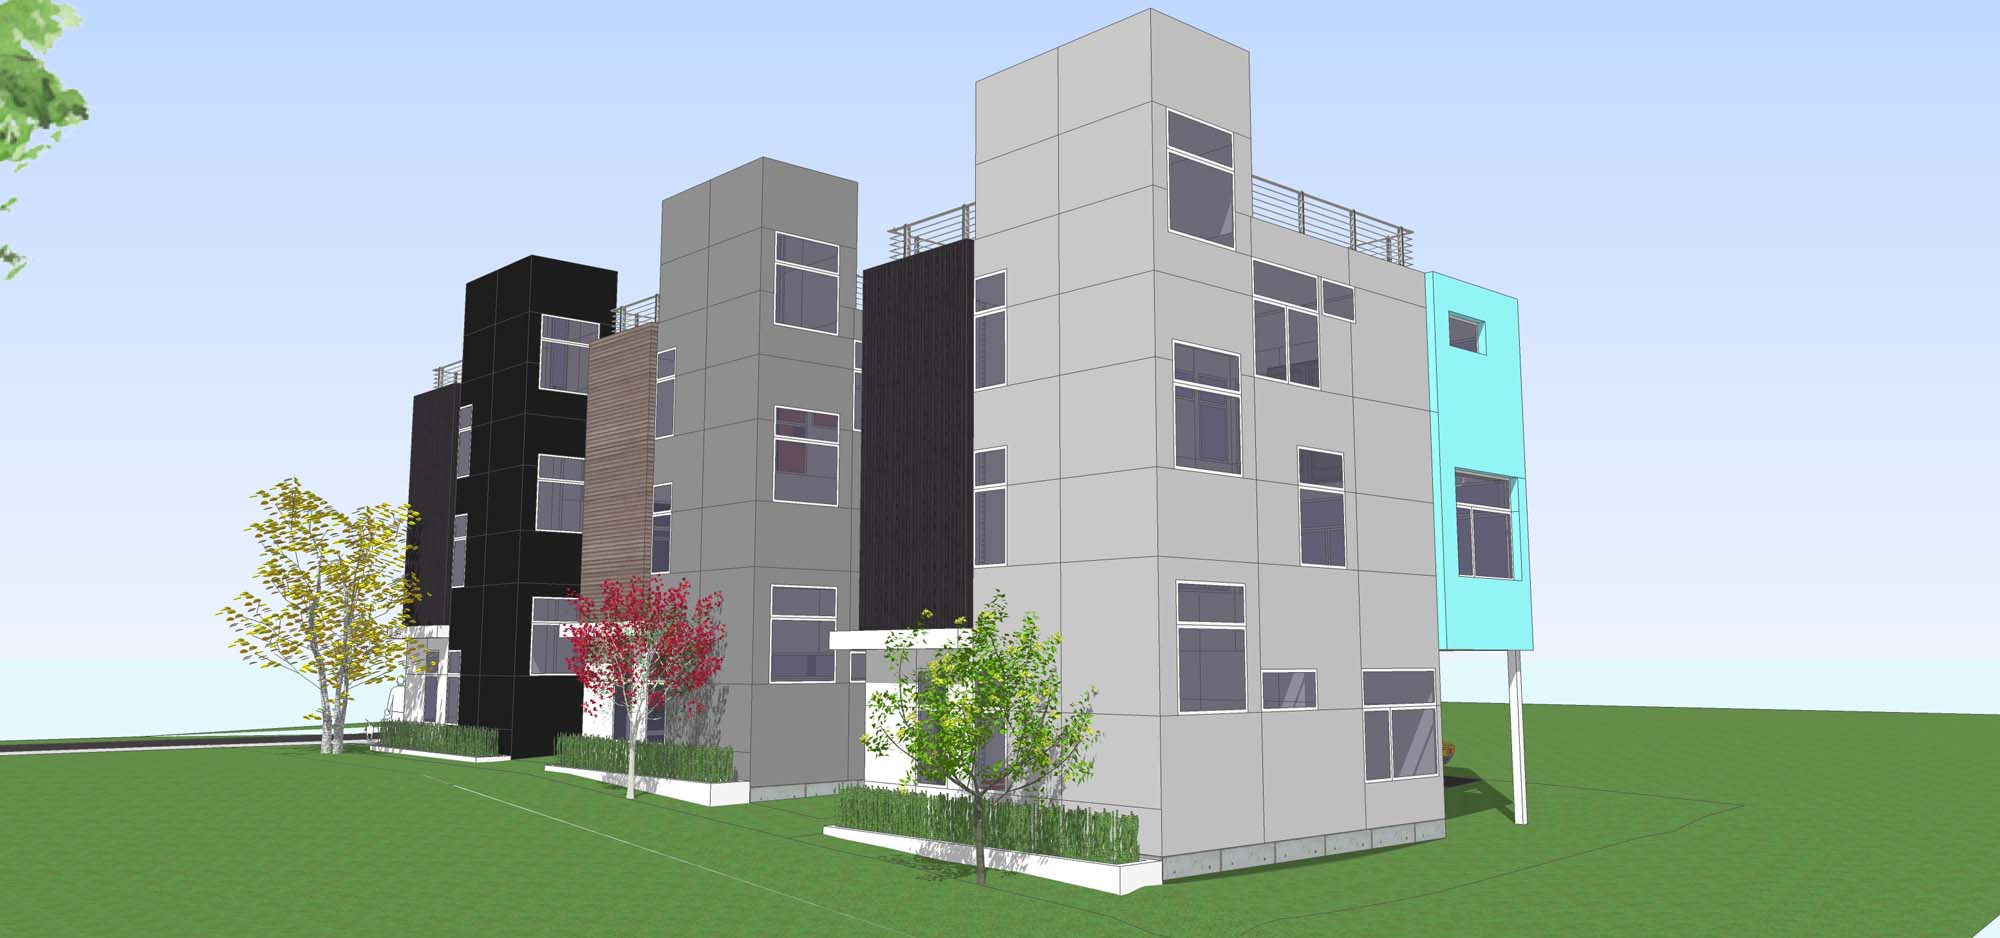 6548-24th-Ave-NW-Model-3